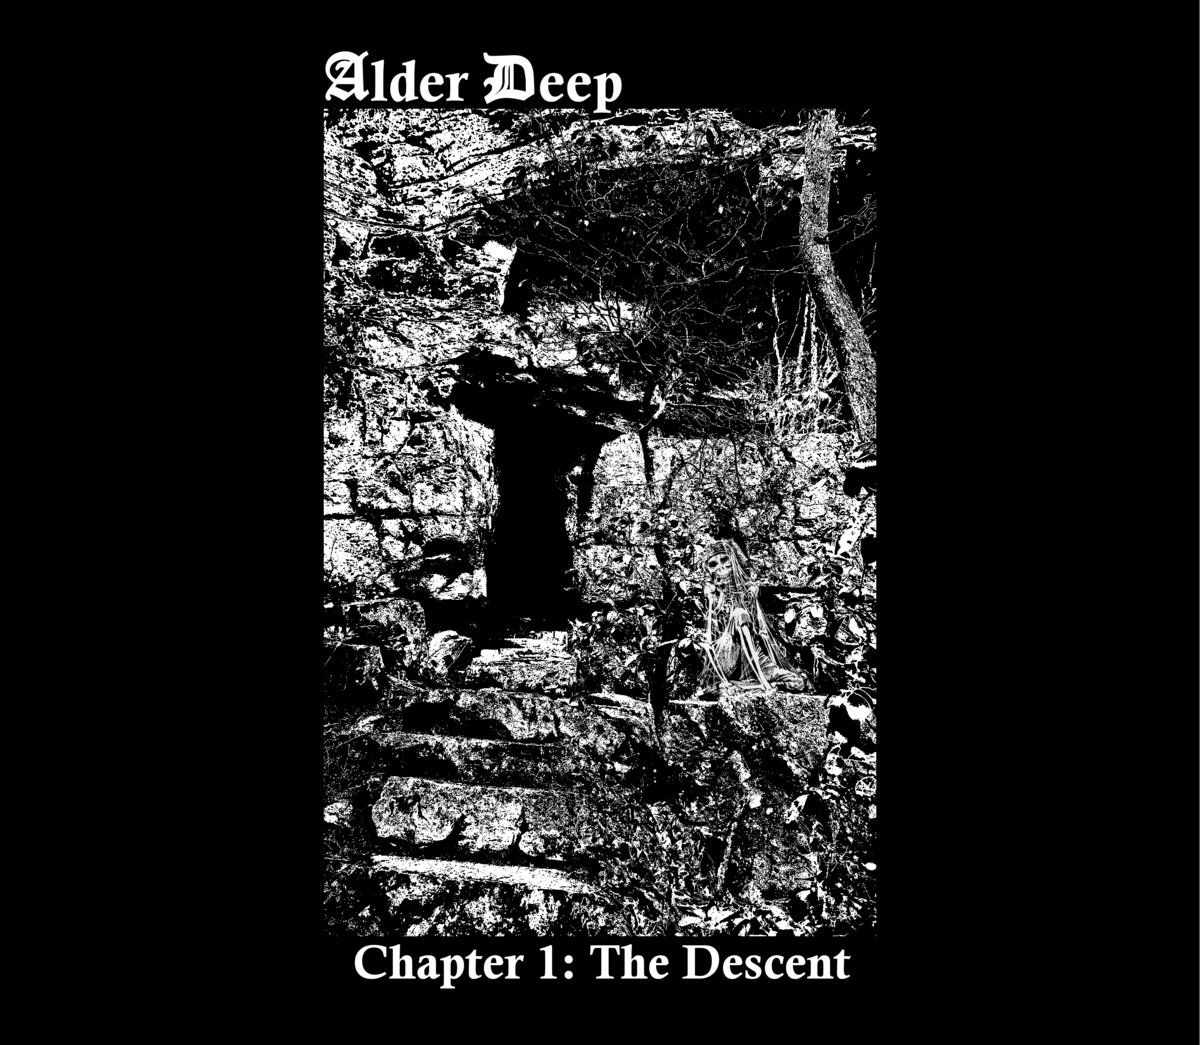 Chapter 1: The Descent